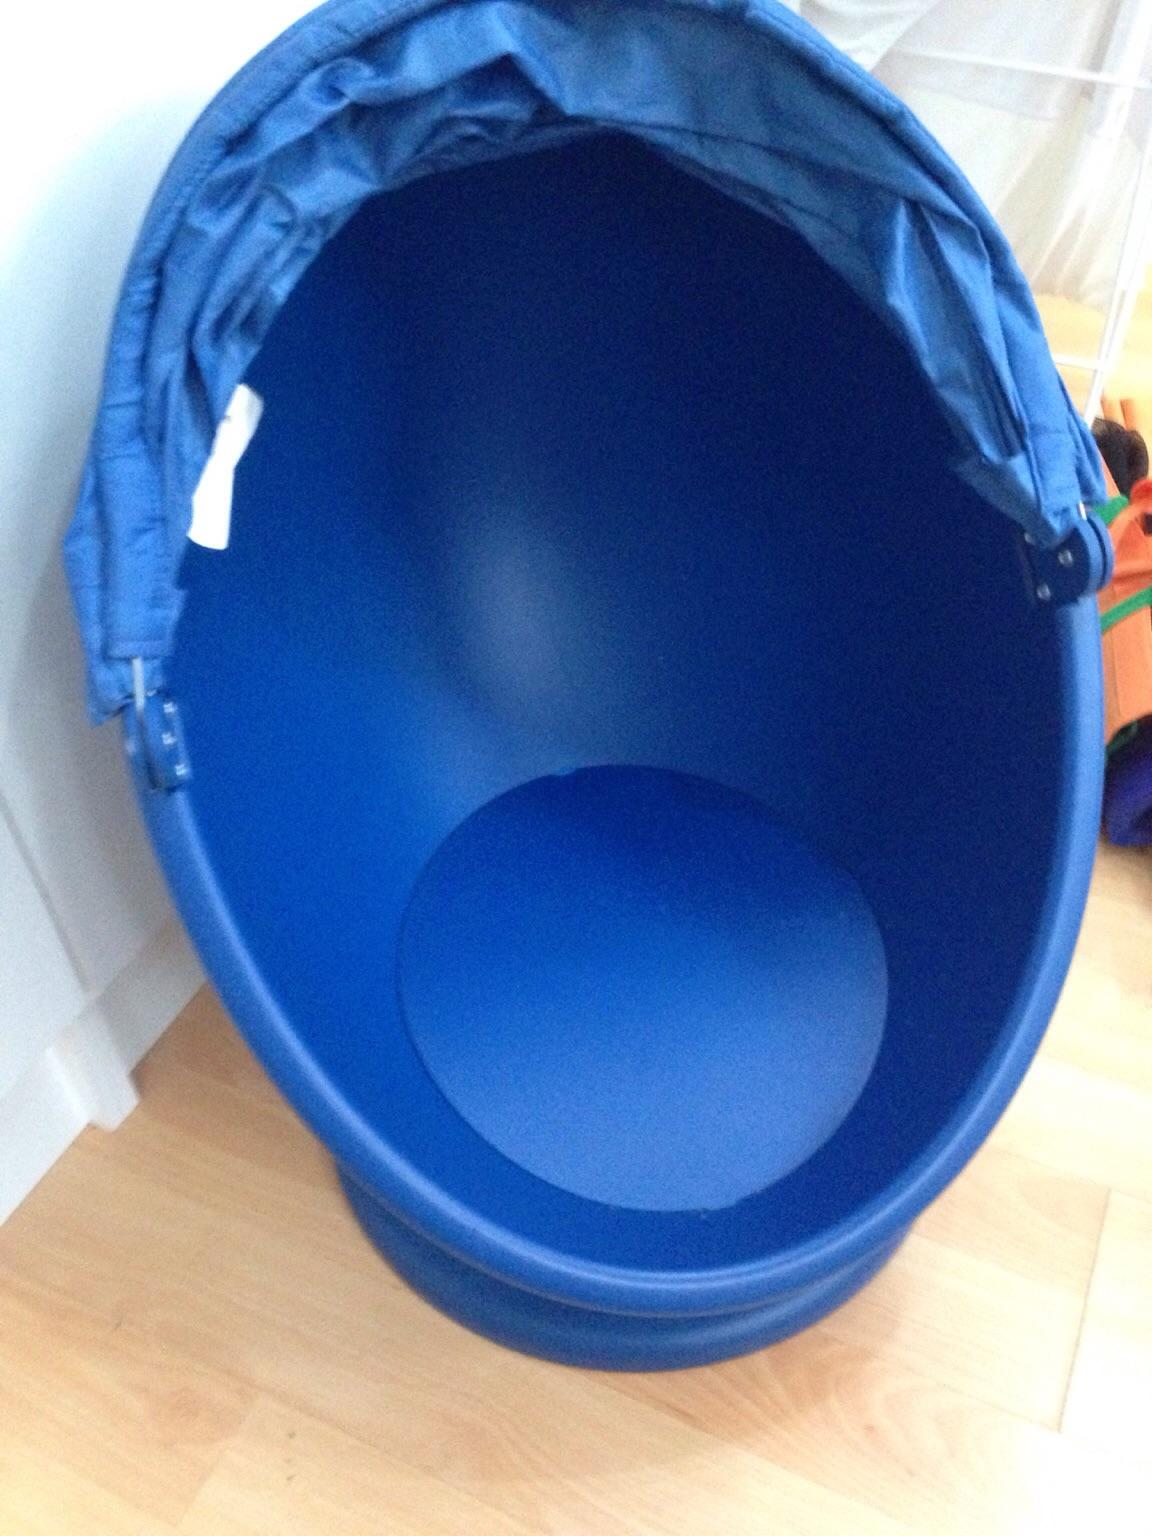 Blue IKEA egg chair in GU46 Yateley for £10.00 for sale ...